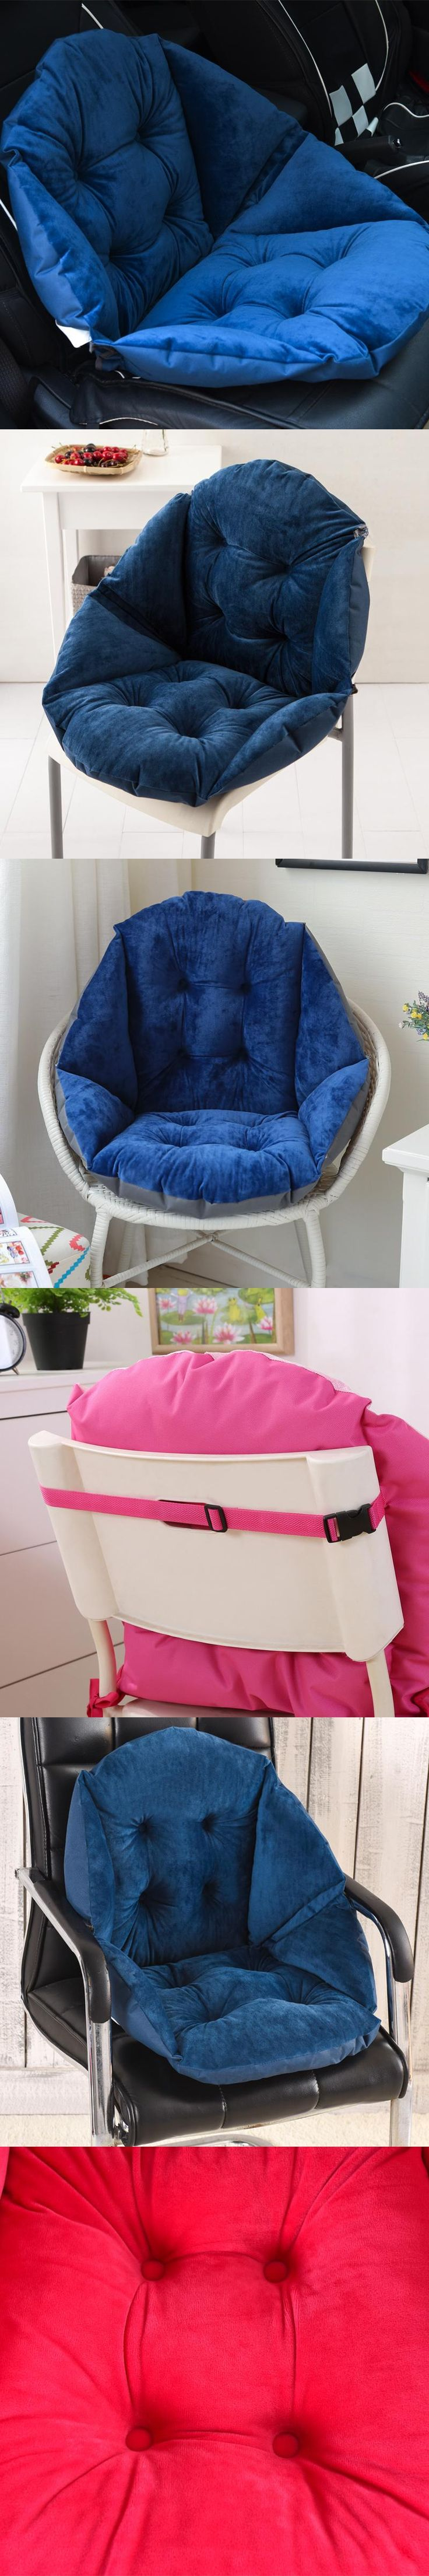 Newest Plush Shell Design Seat Cushion Lumbar Back Support Cushion Pillow for Office Home Car Seat Chair 2 Size